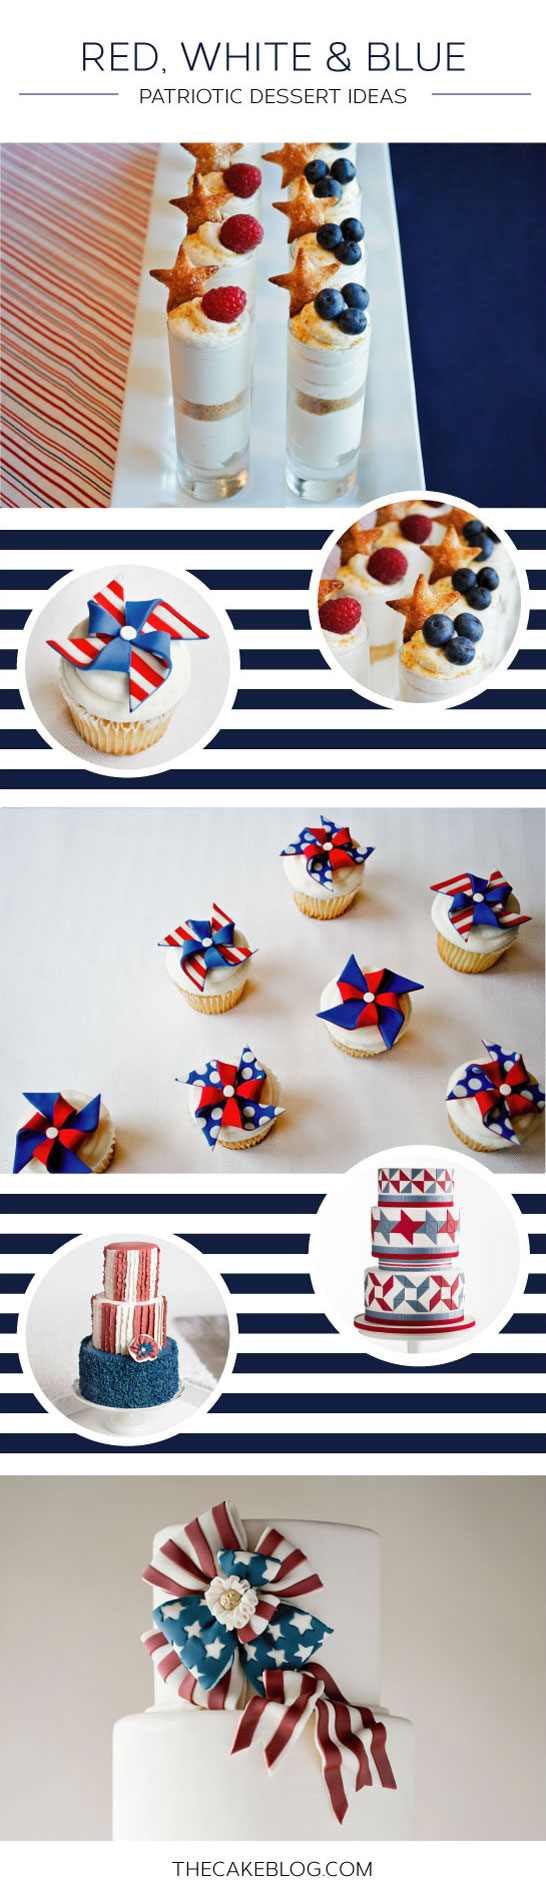 Red, White & Blue Dessert Inspiration on TheCakeBlog.com